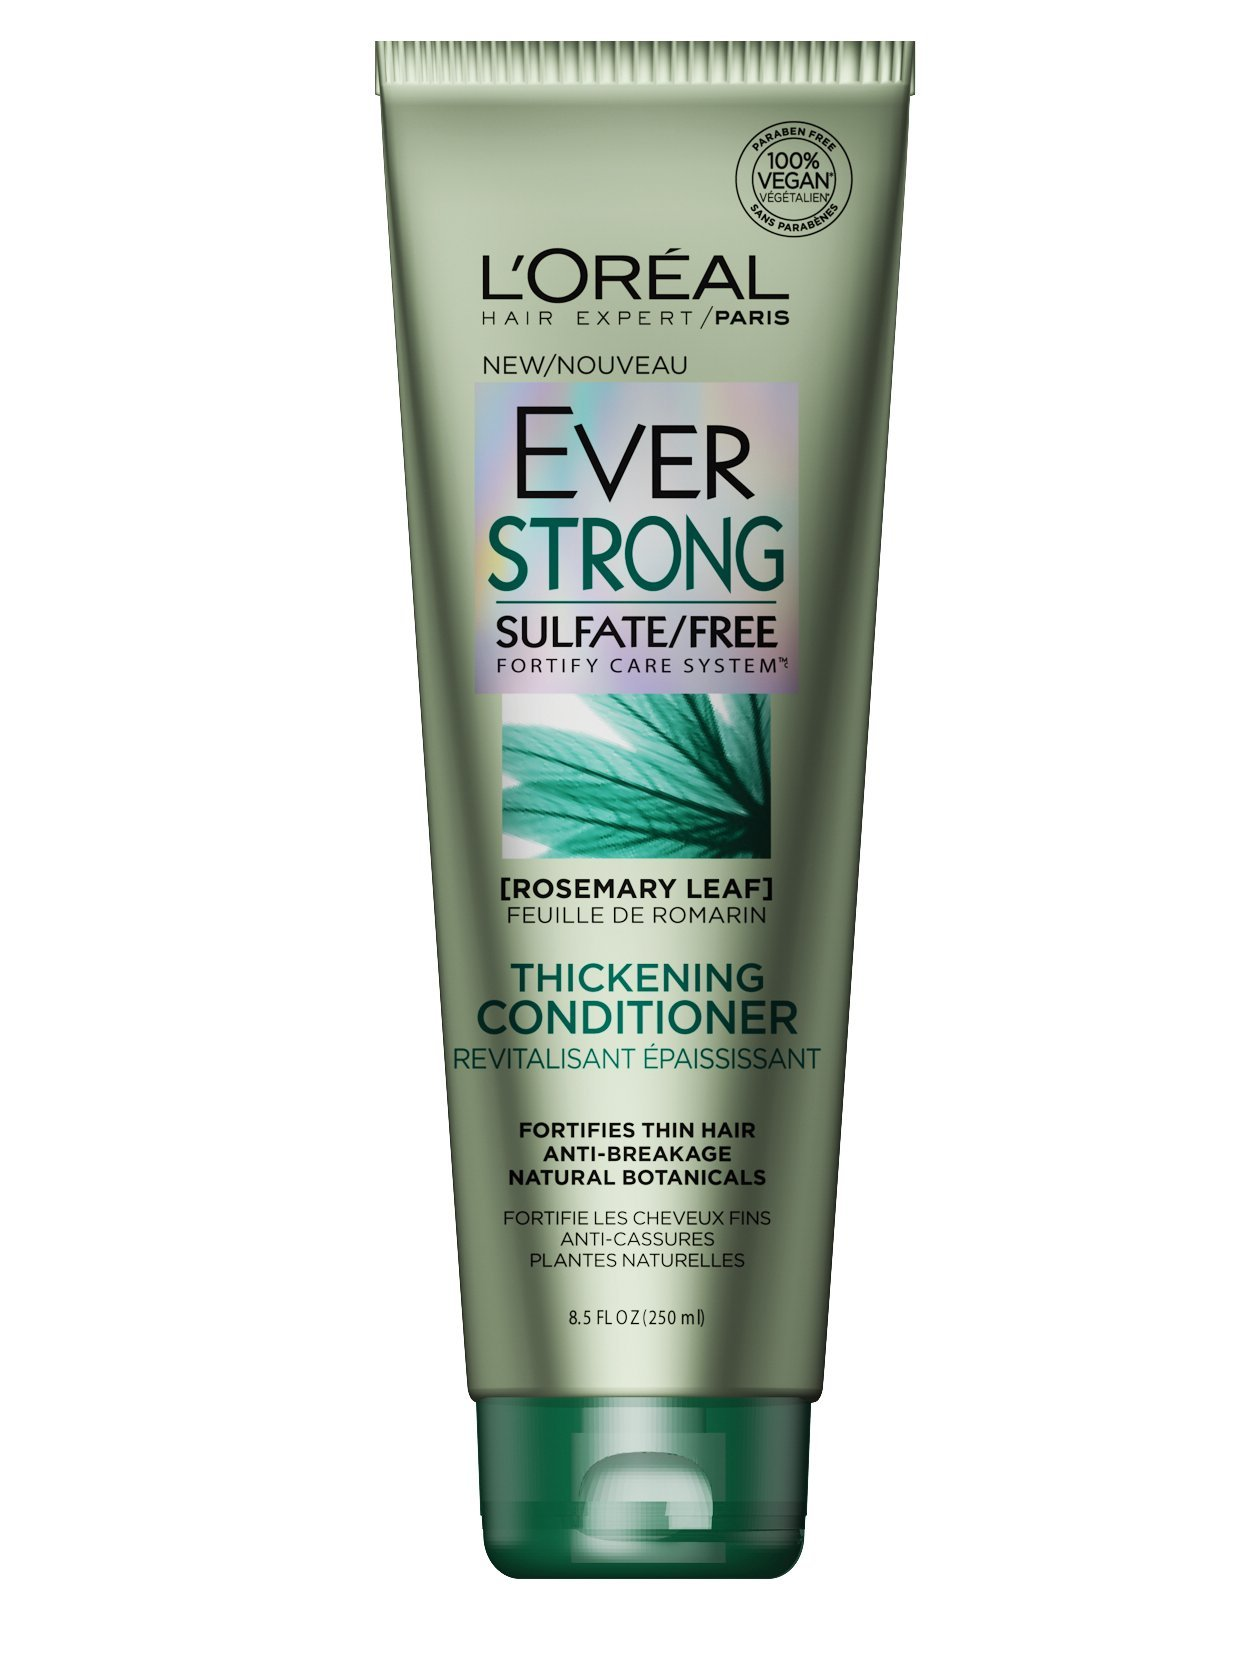 L'Oréal Paris EverStrong Sulfate Free Thickening Conditioner, 8.5 fl. oz.